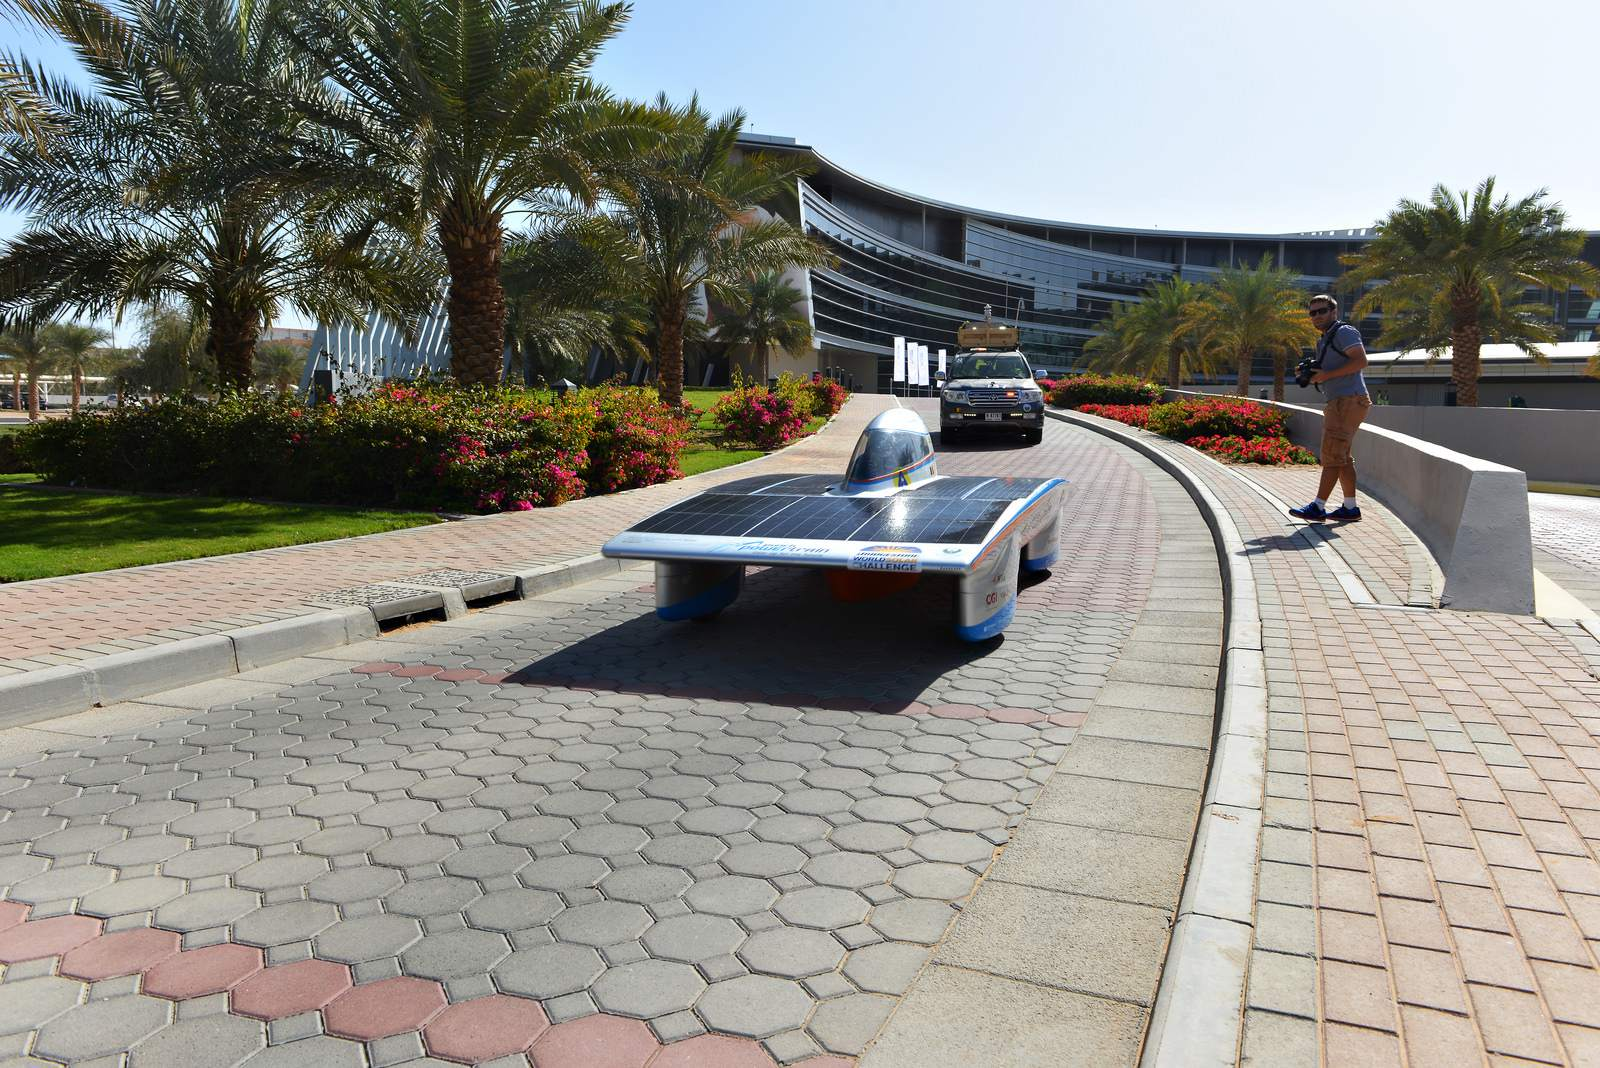 solar challenge8 Abu Dhabi Solar Challenge   Victory for Michigan University Team